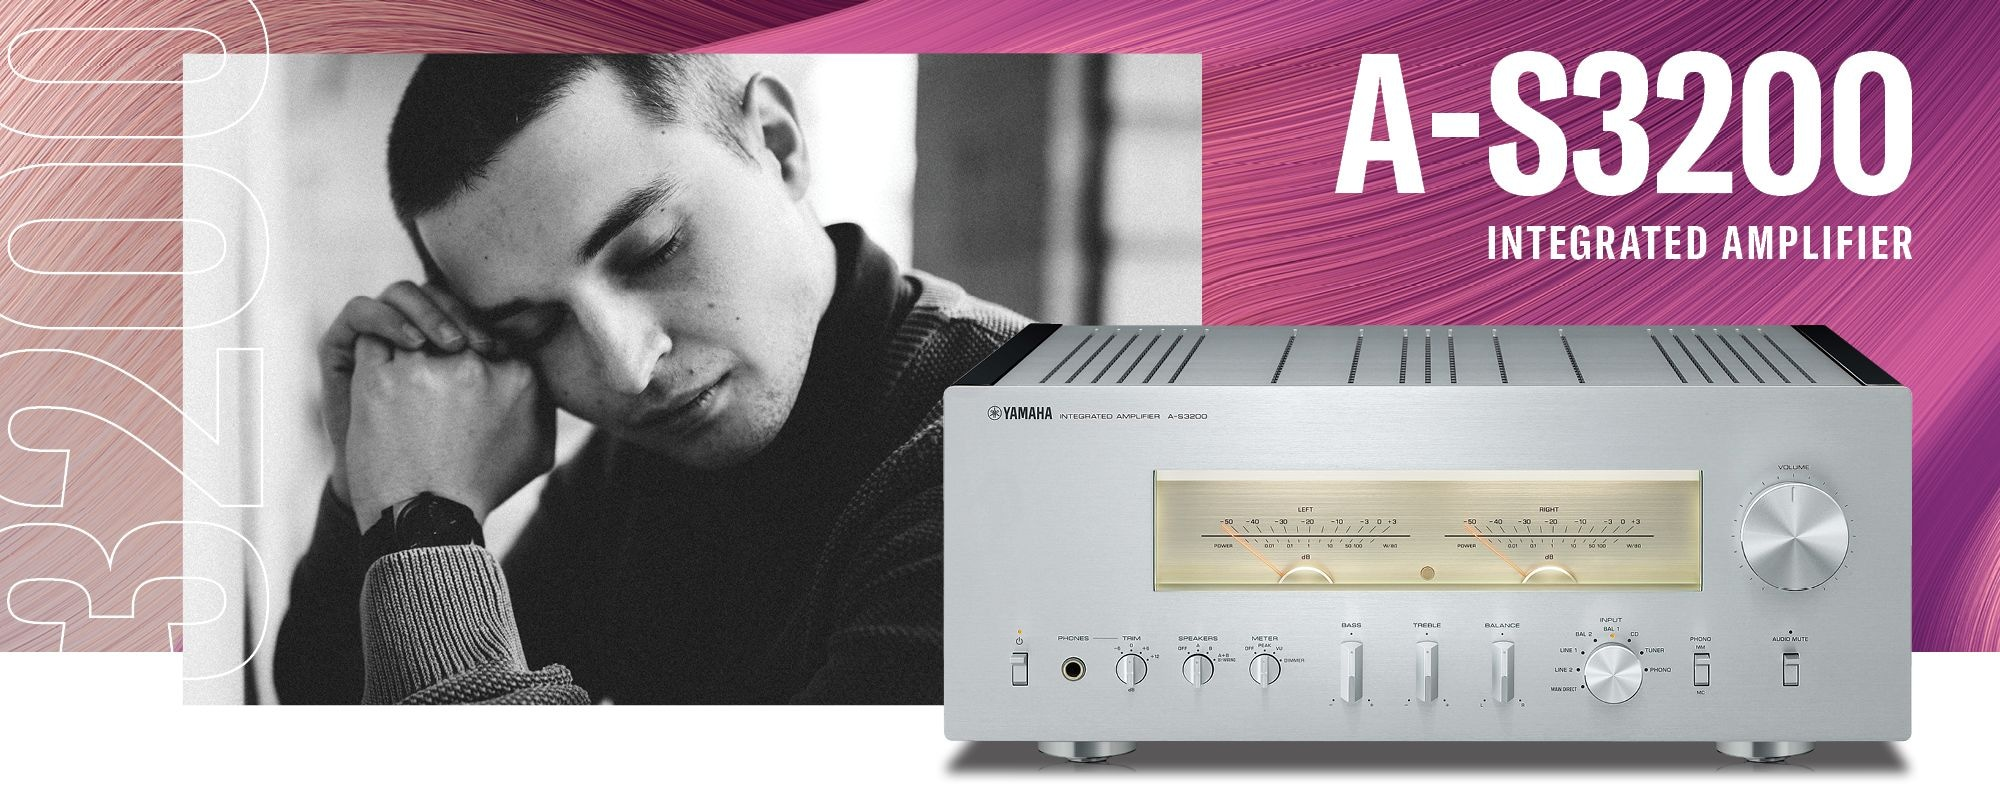 A-S3200 Integrated Amplifier - Header Banner - Desktop